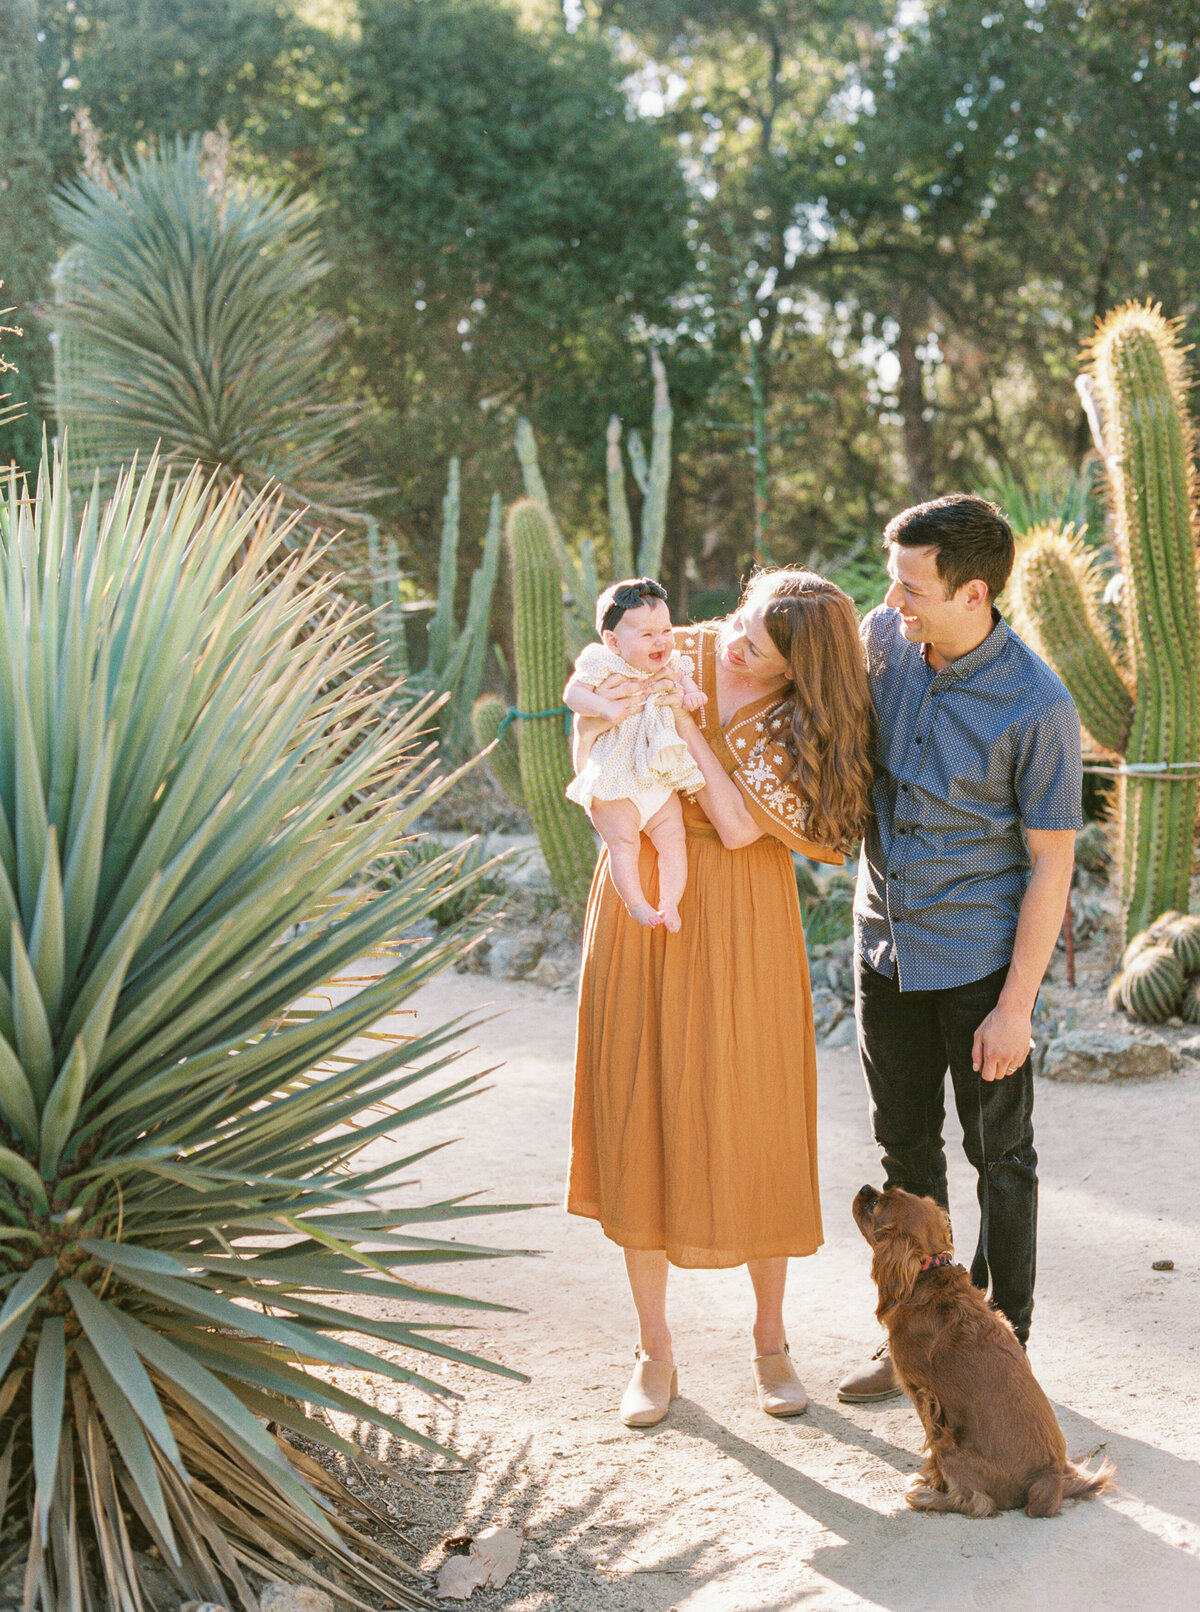 Olivia Marshall Photography- Cactus Desert Garden Family Photos-15